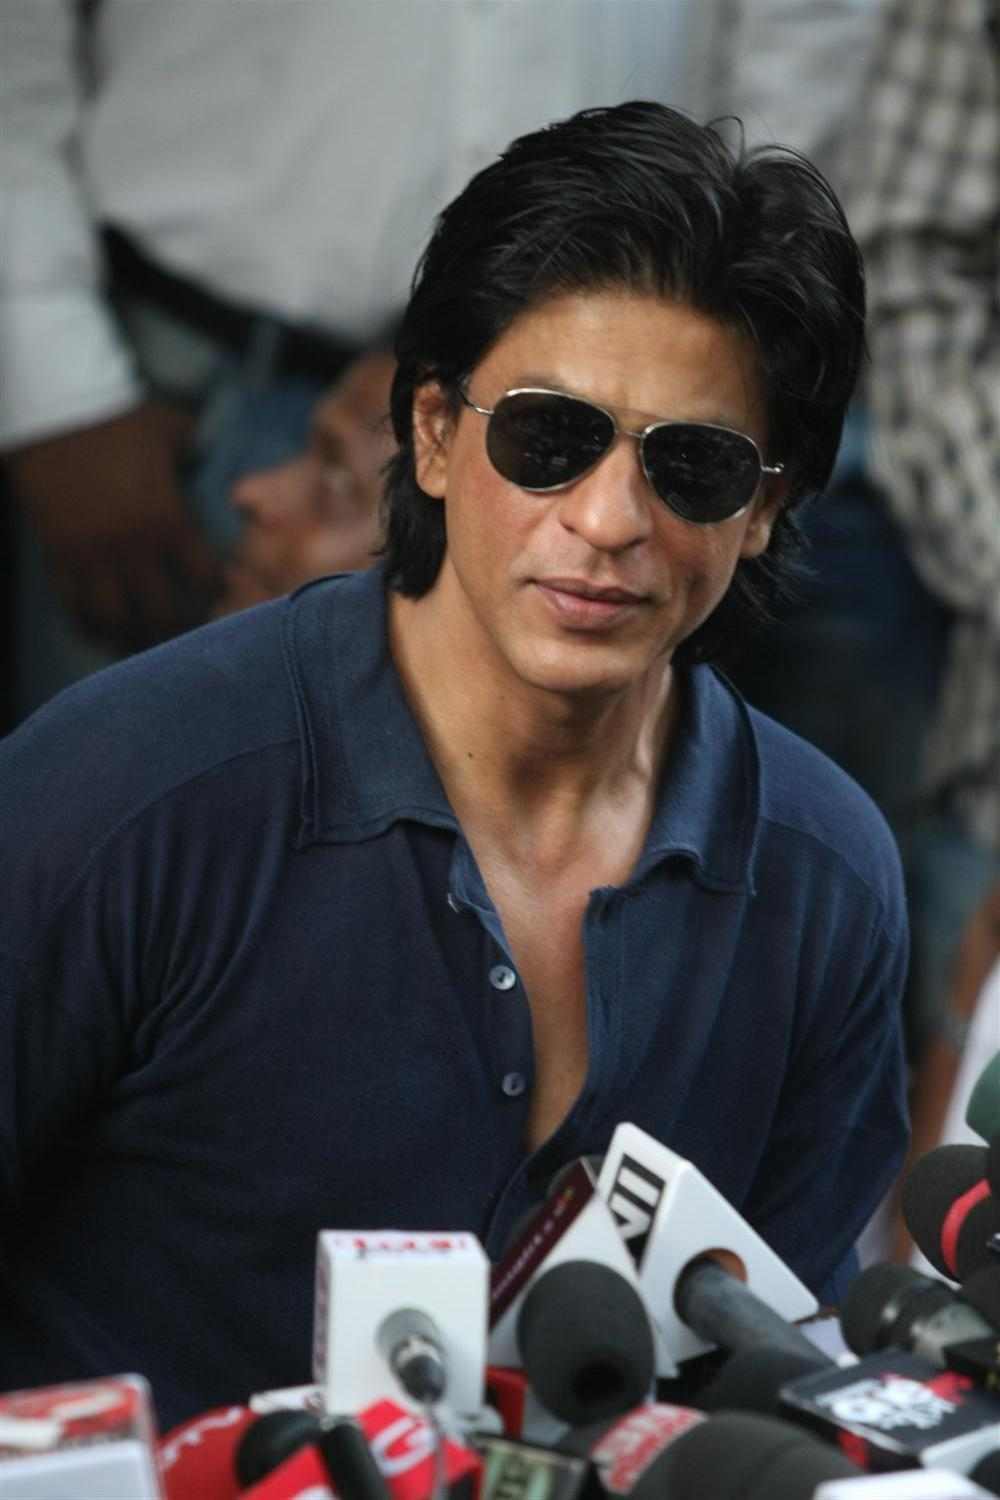 Shah Rukh Khan King Khan celebrating his 46th birthday with media ...